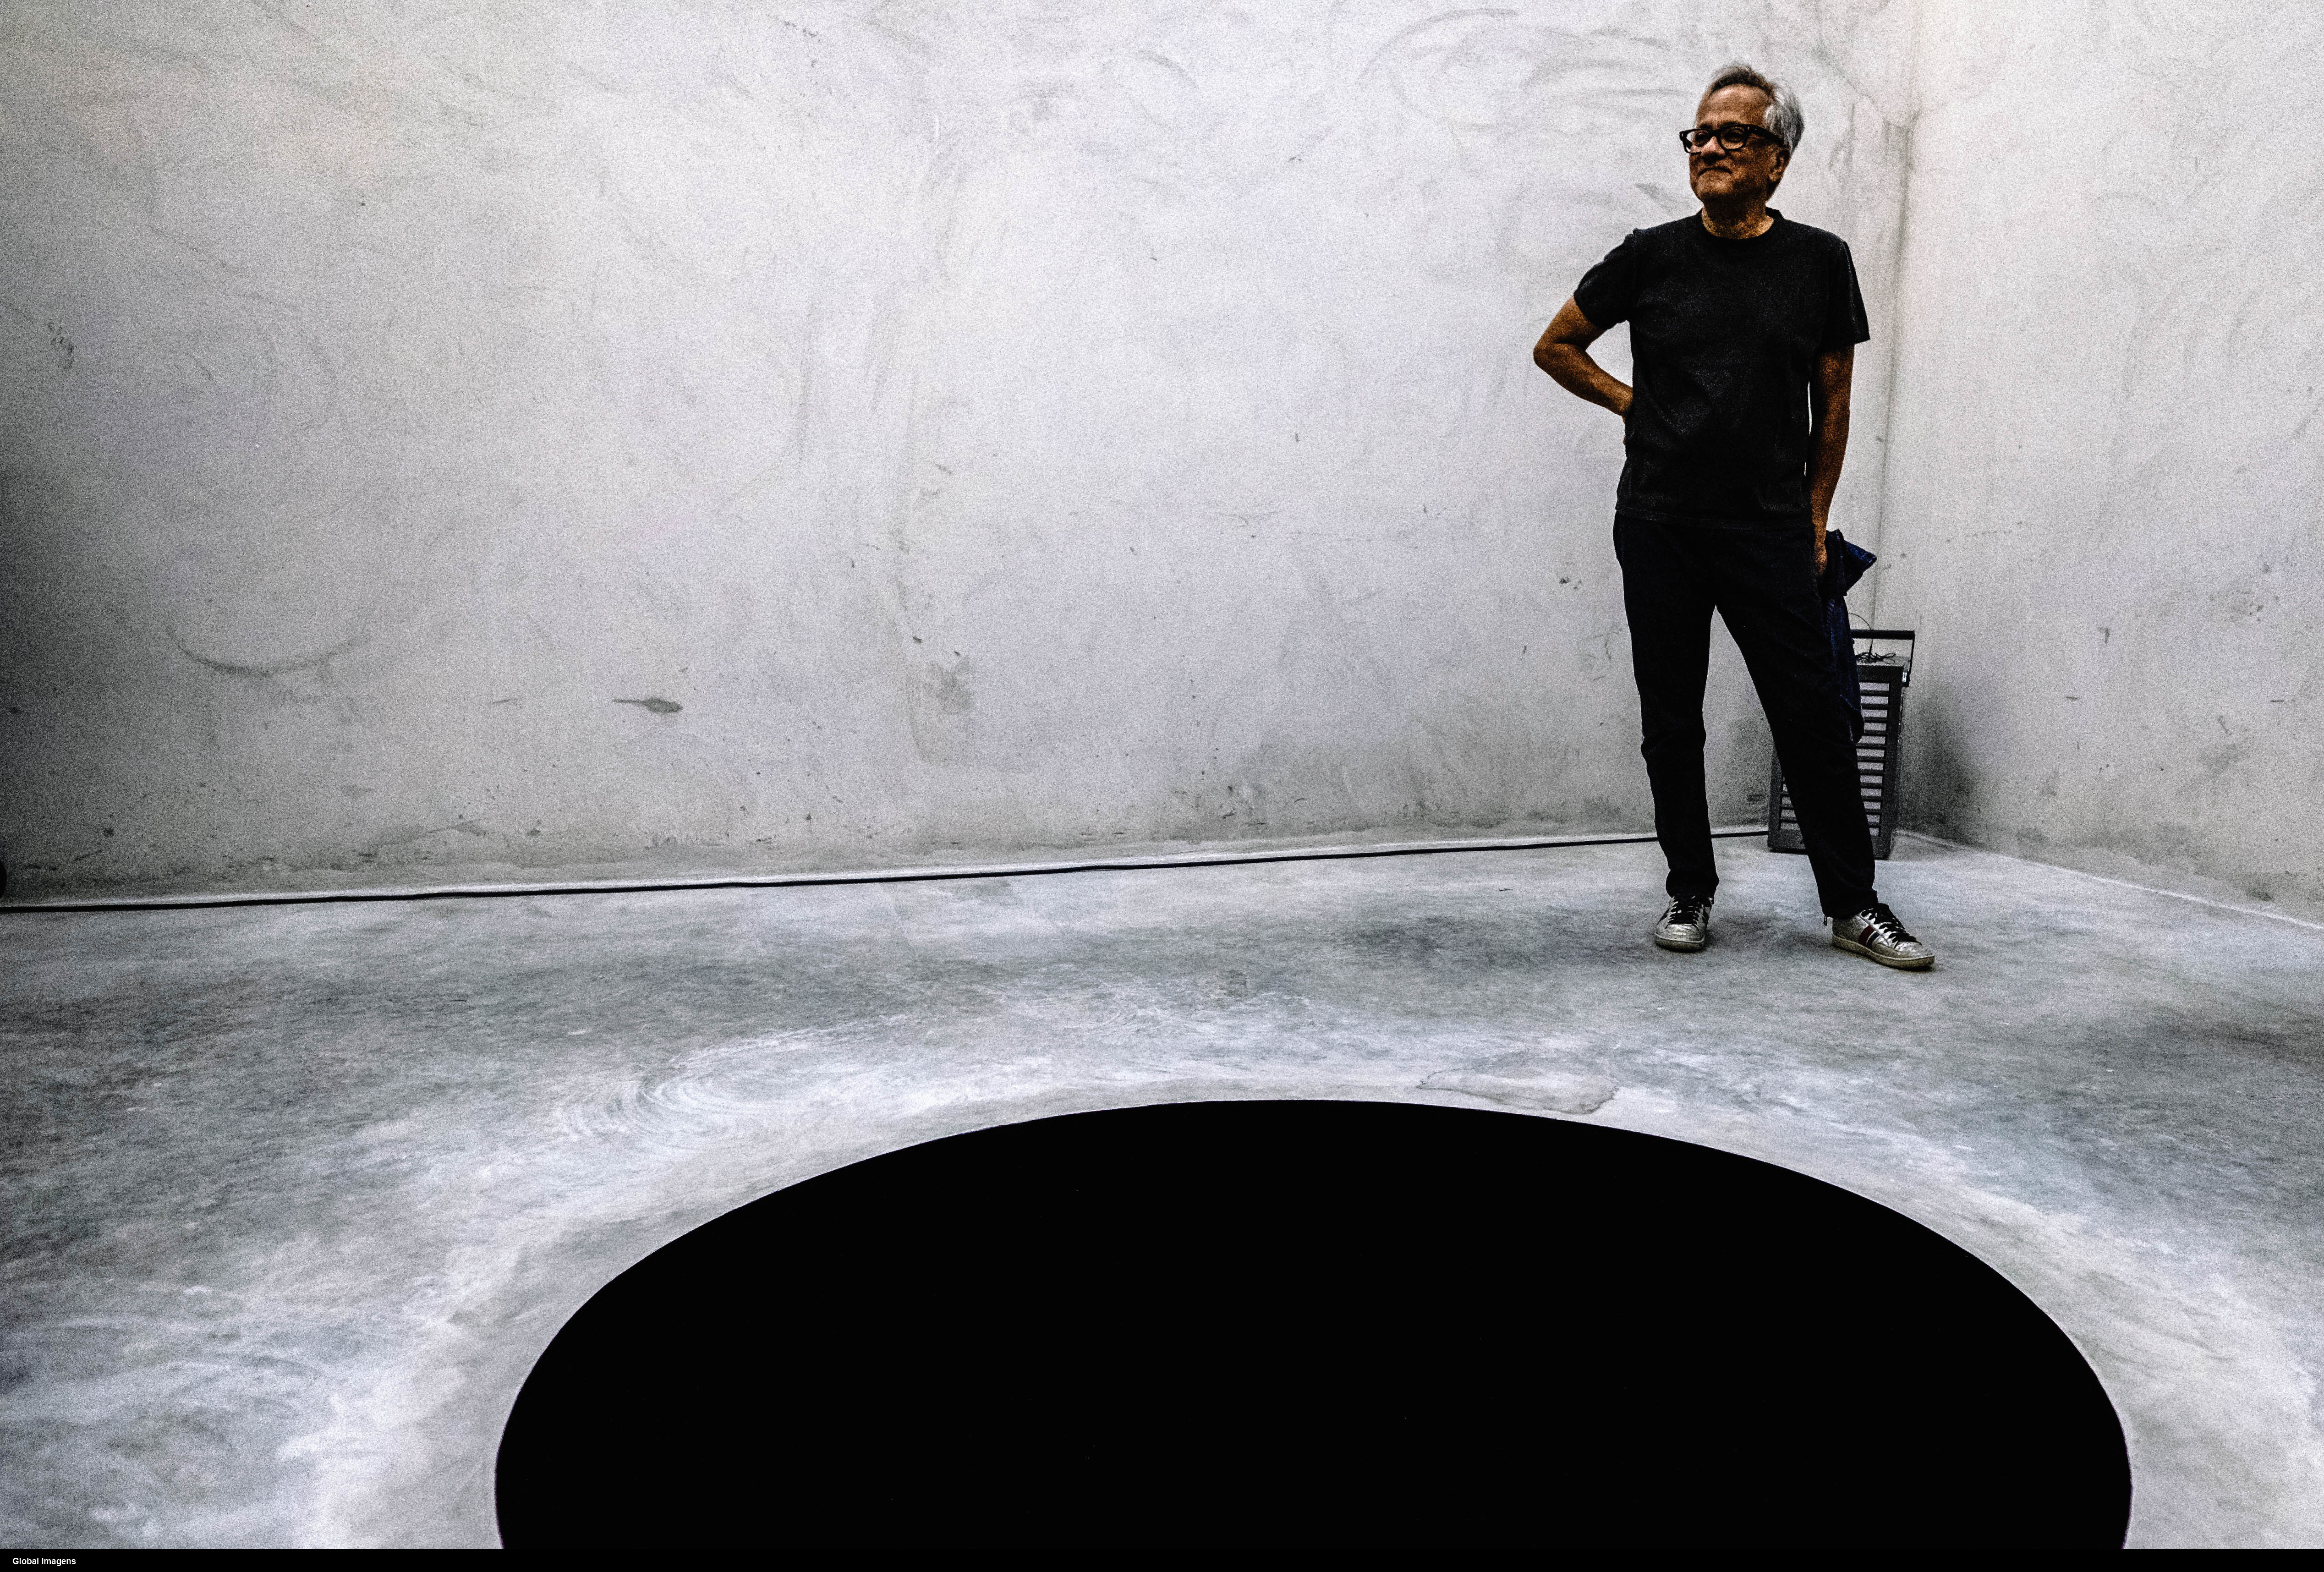 Man falls into black hole art exhibit in Portugal